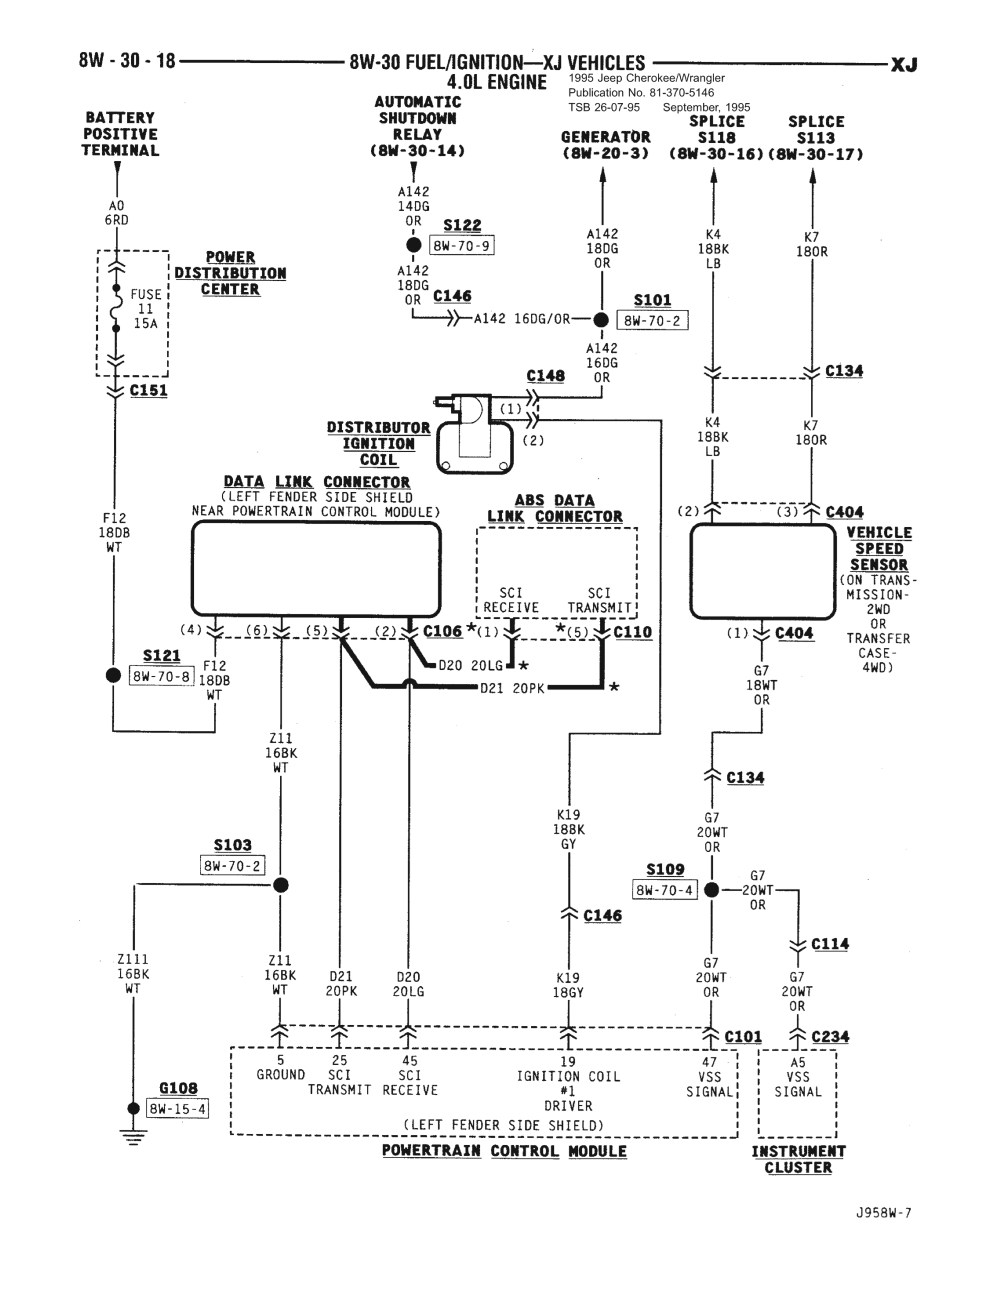 medium resolution of here s your ignition coil diagram name 95 ignition coil jpg views 2890 size 2 22 mb